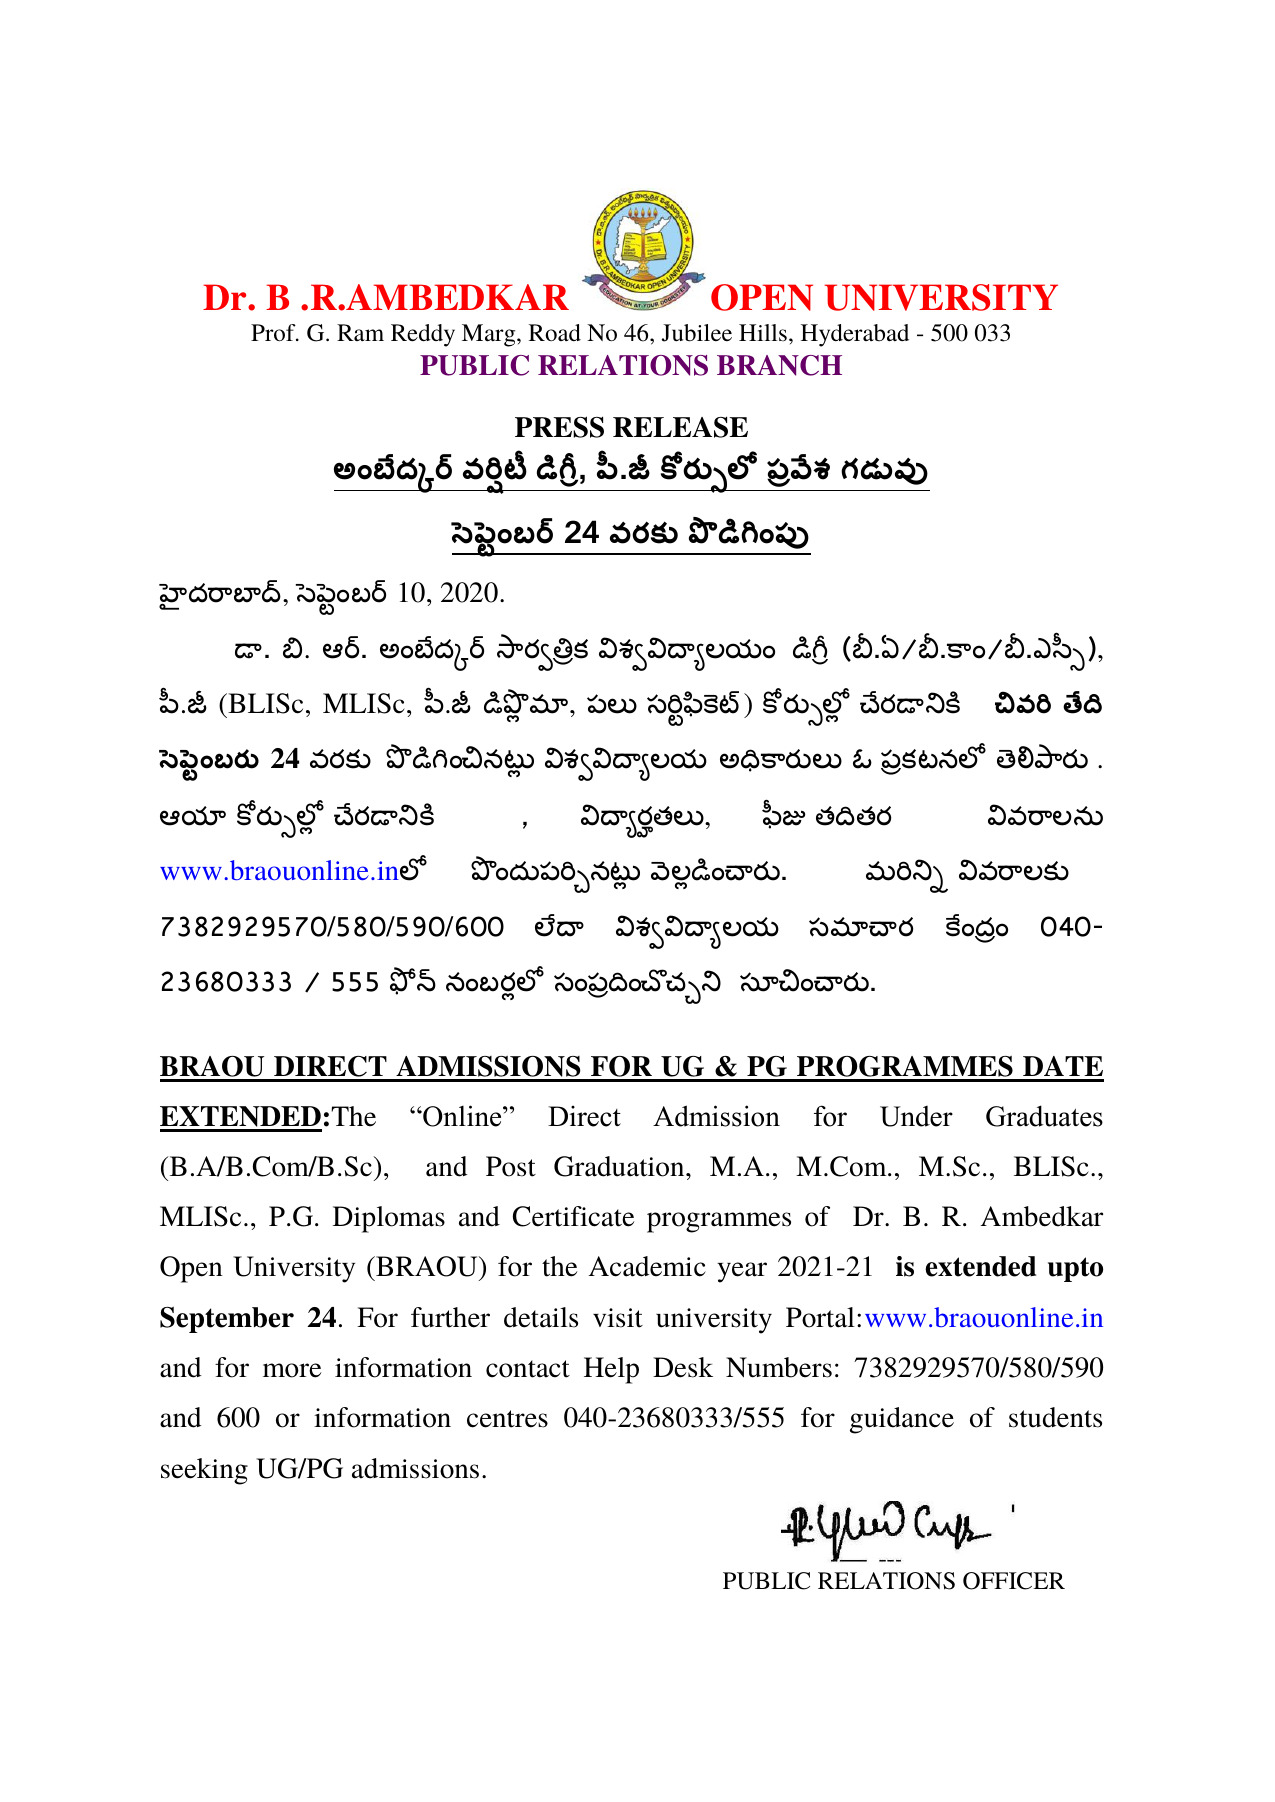 Dr.B.R.Ambedkar Open University UG & PG Admissions Date Extended Notification